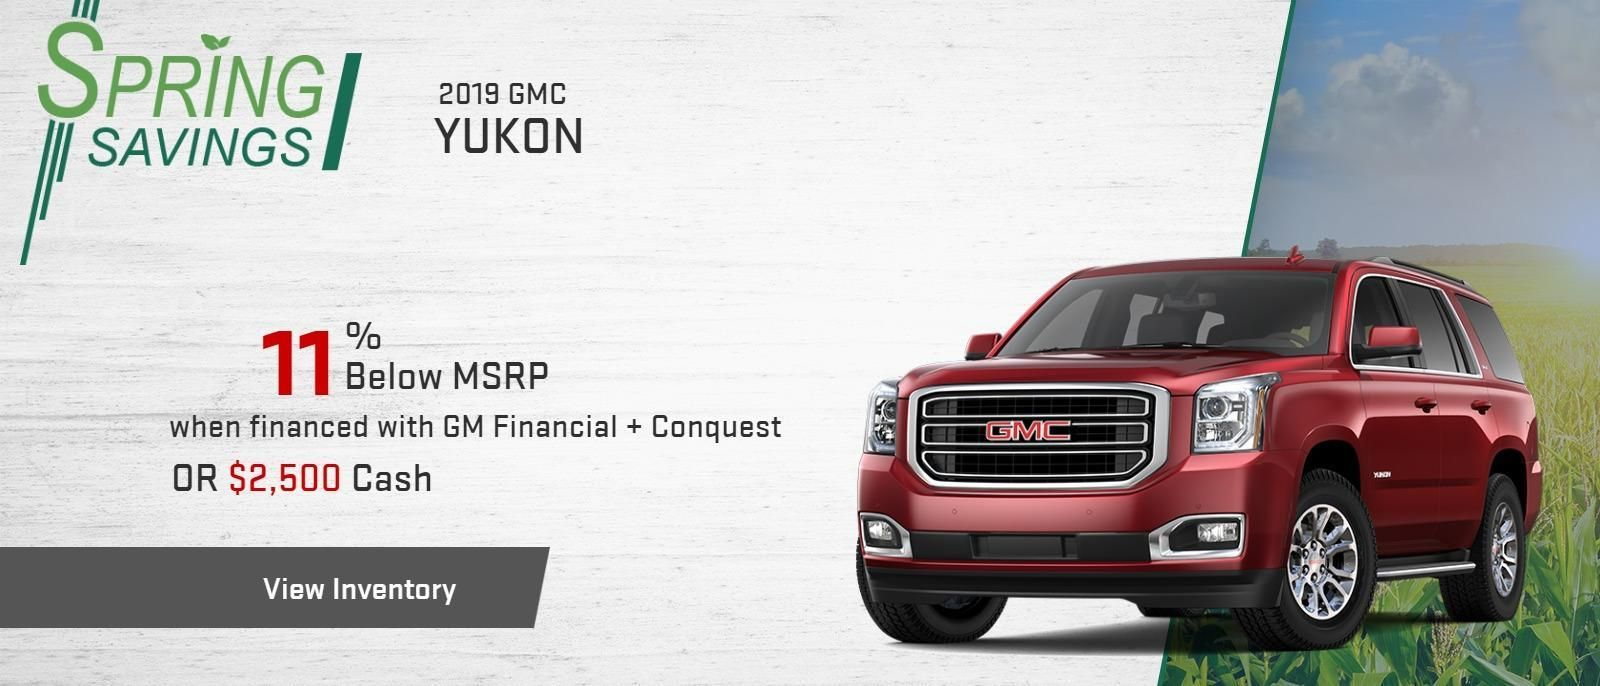 Timbrook Buick Gmc In Cumberland A Frostburg Buick And Gmc